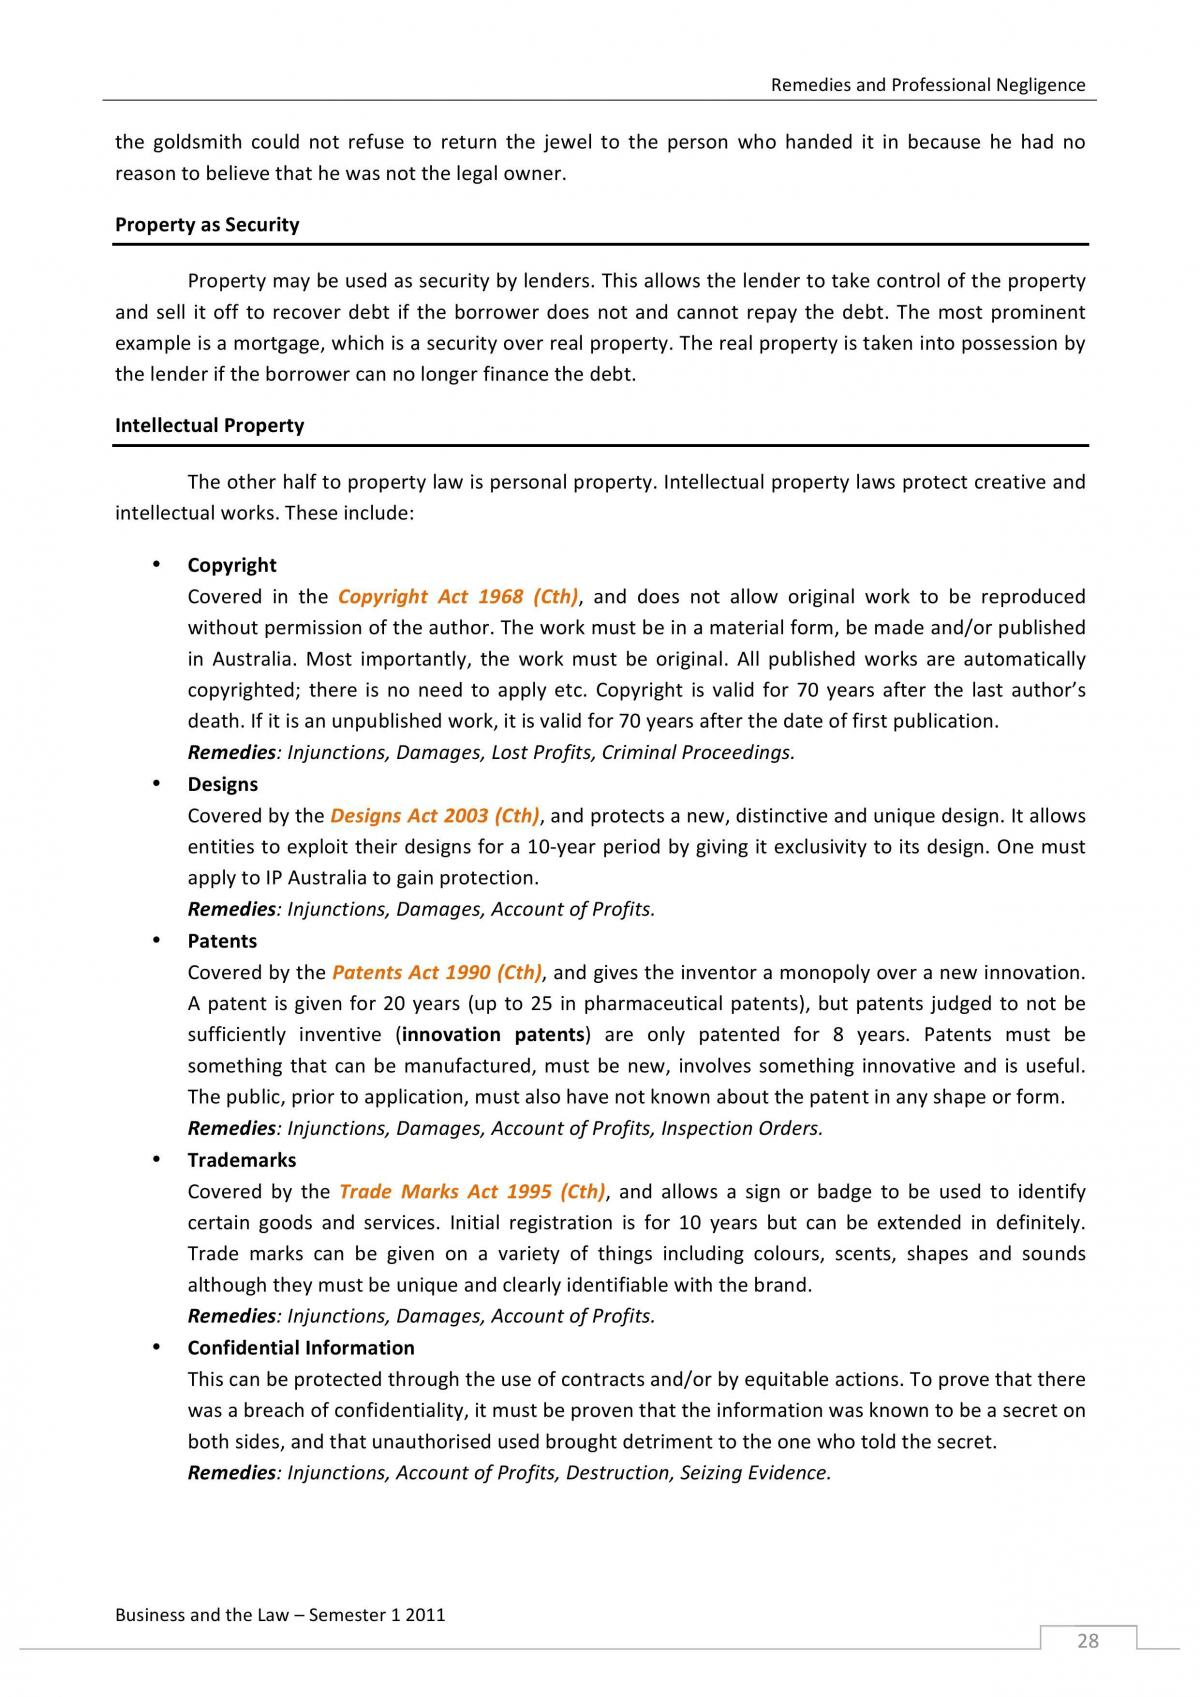 Foundations of Law - LEGL1001 - Page 27